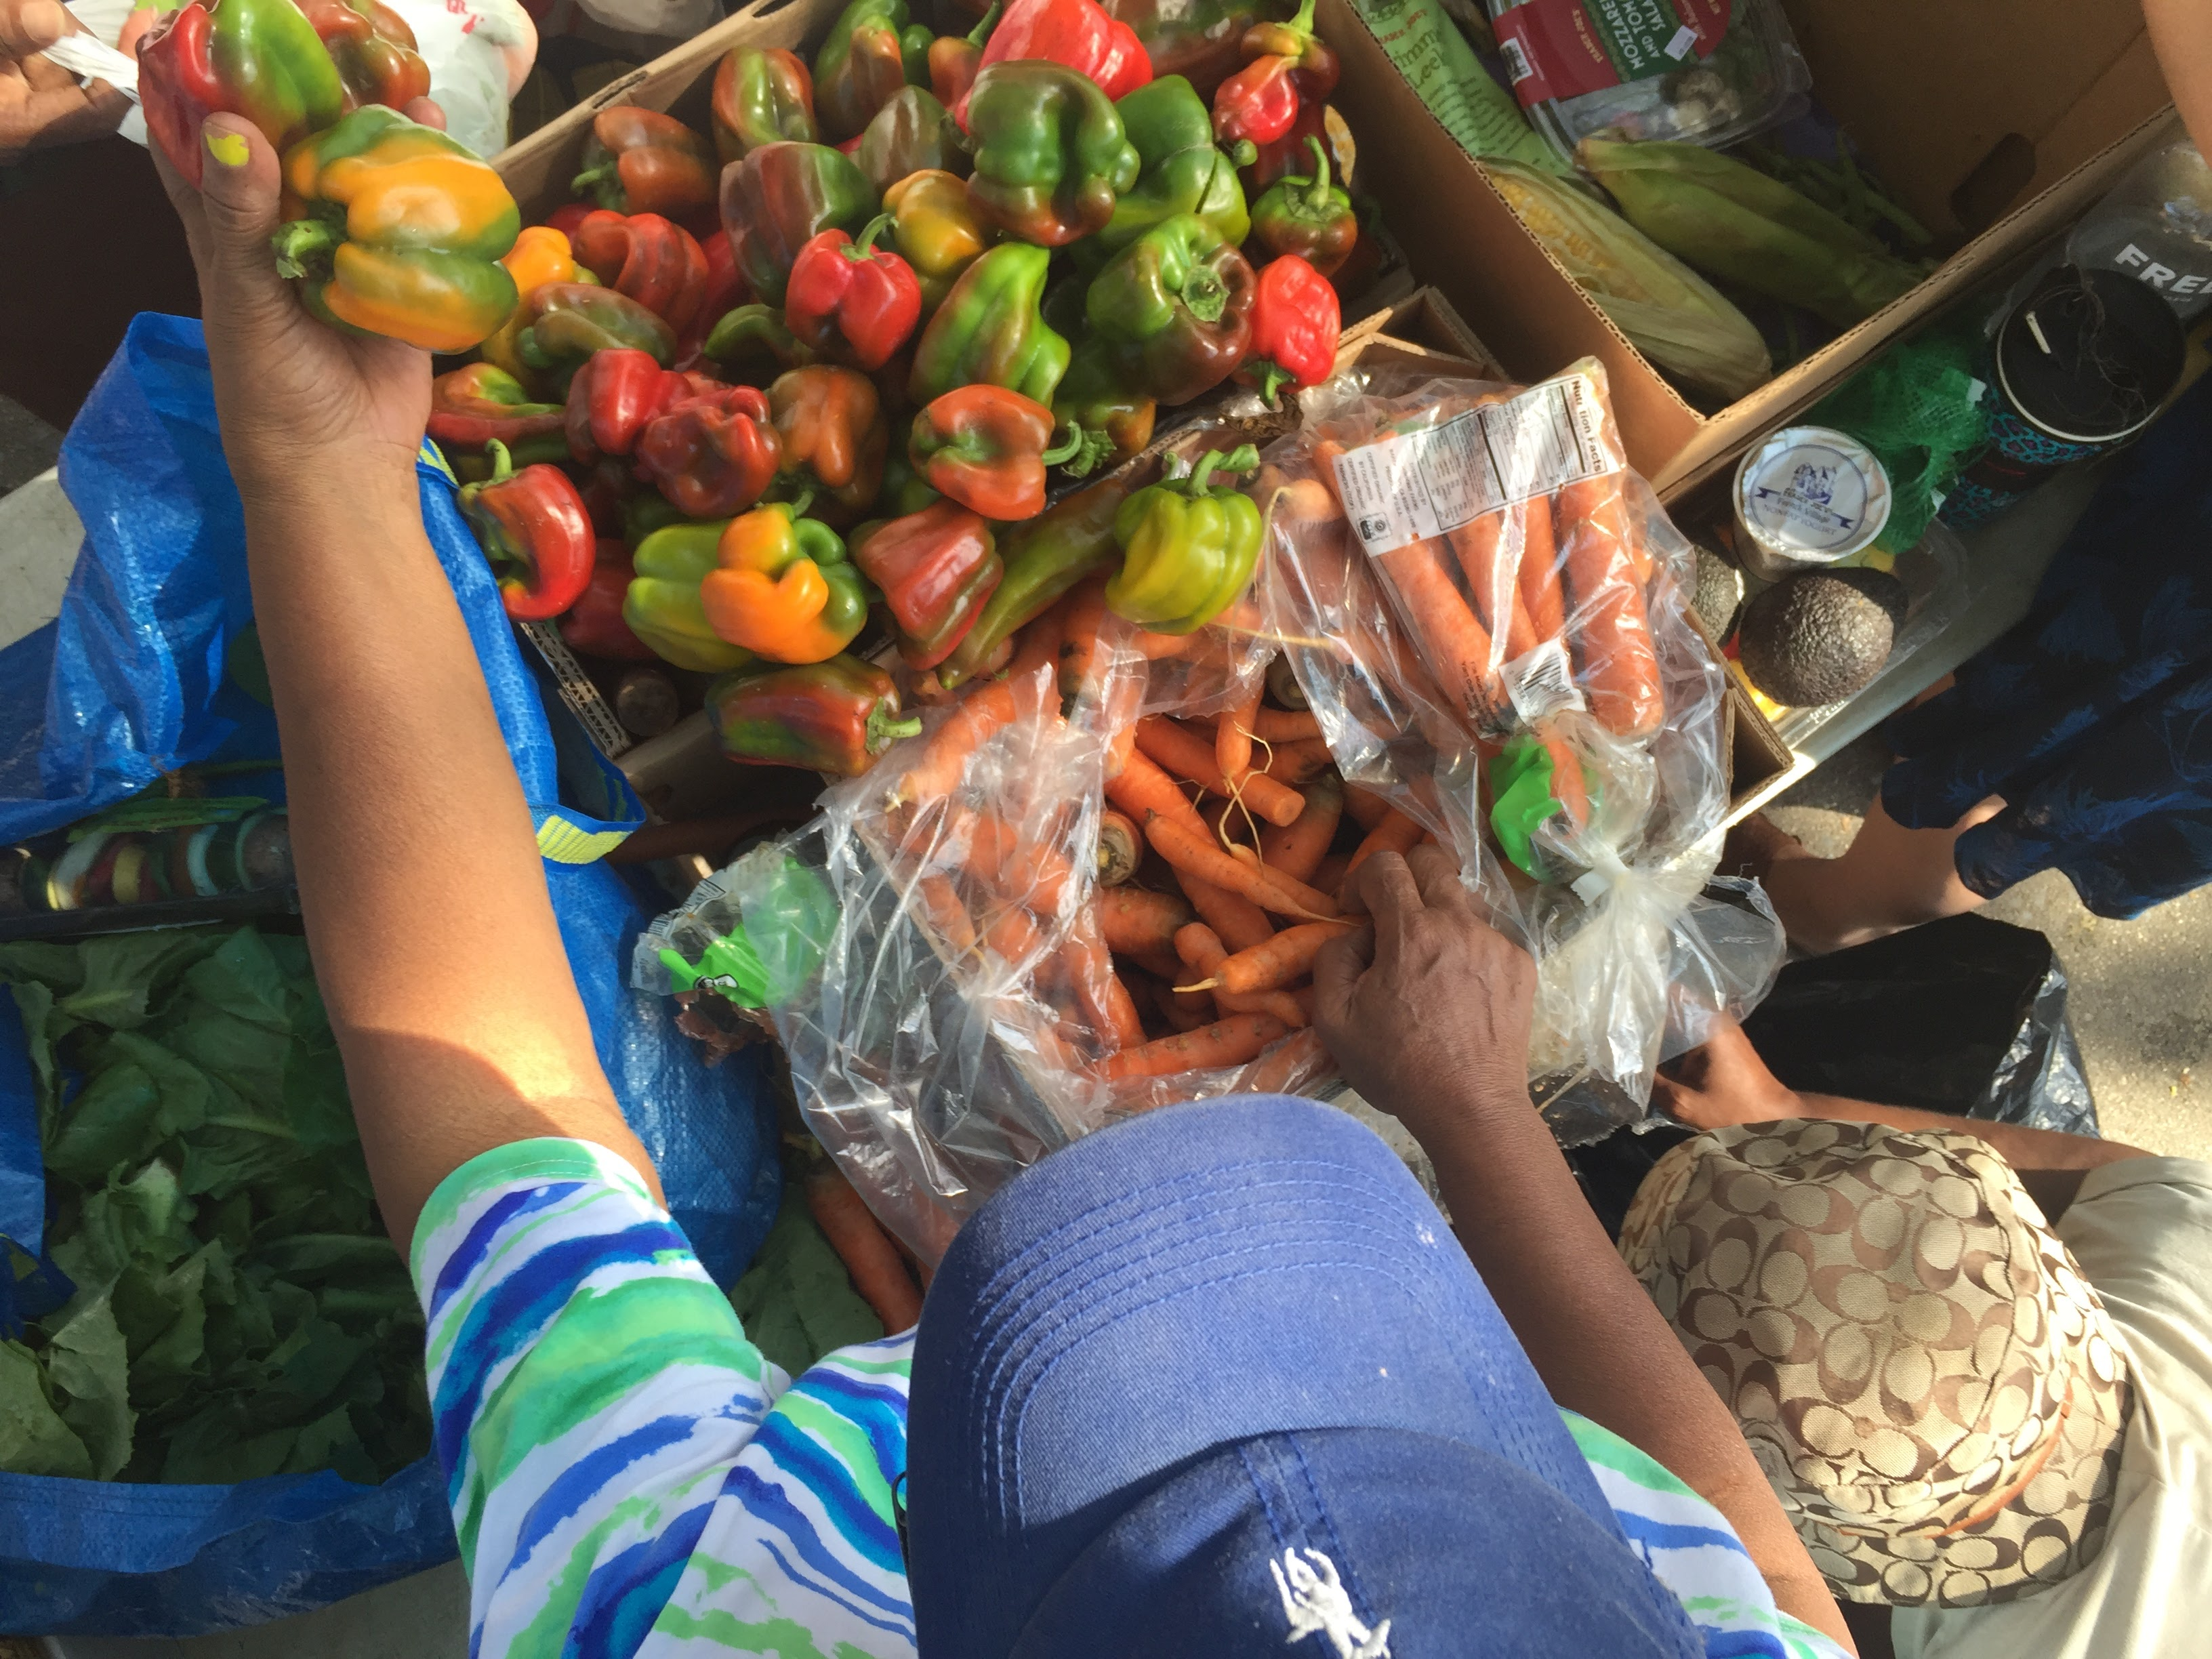 Sharing peppers at the Community Solidarity Bedstuy Food Share